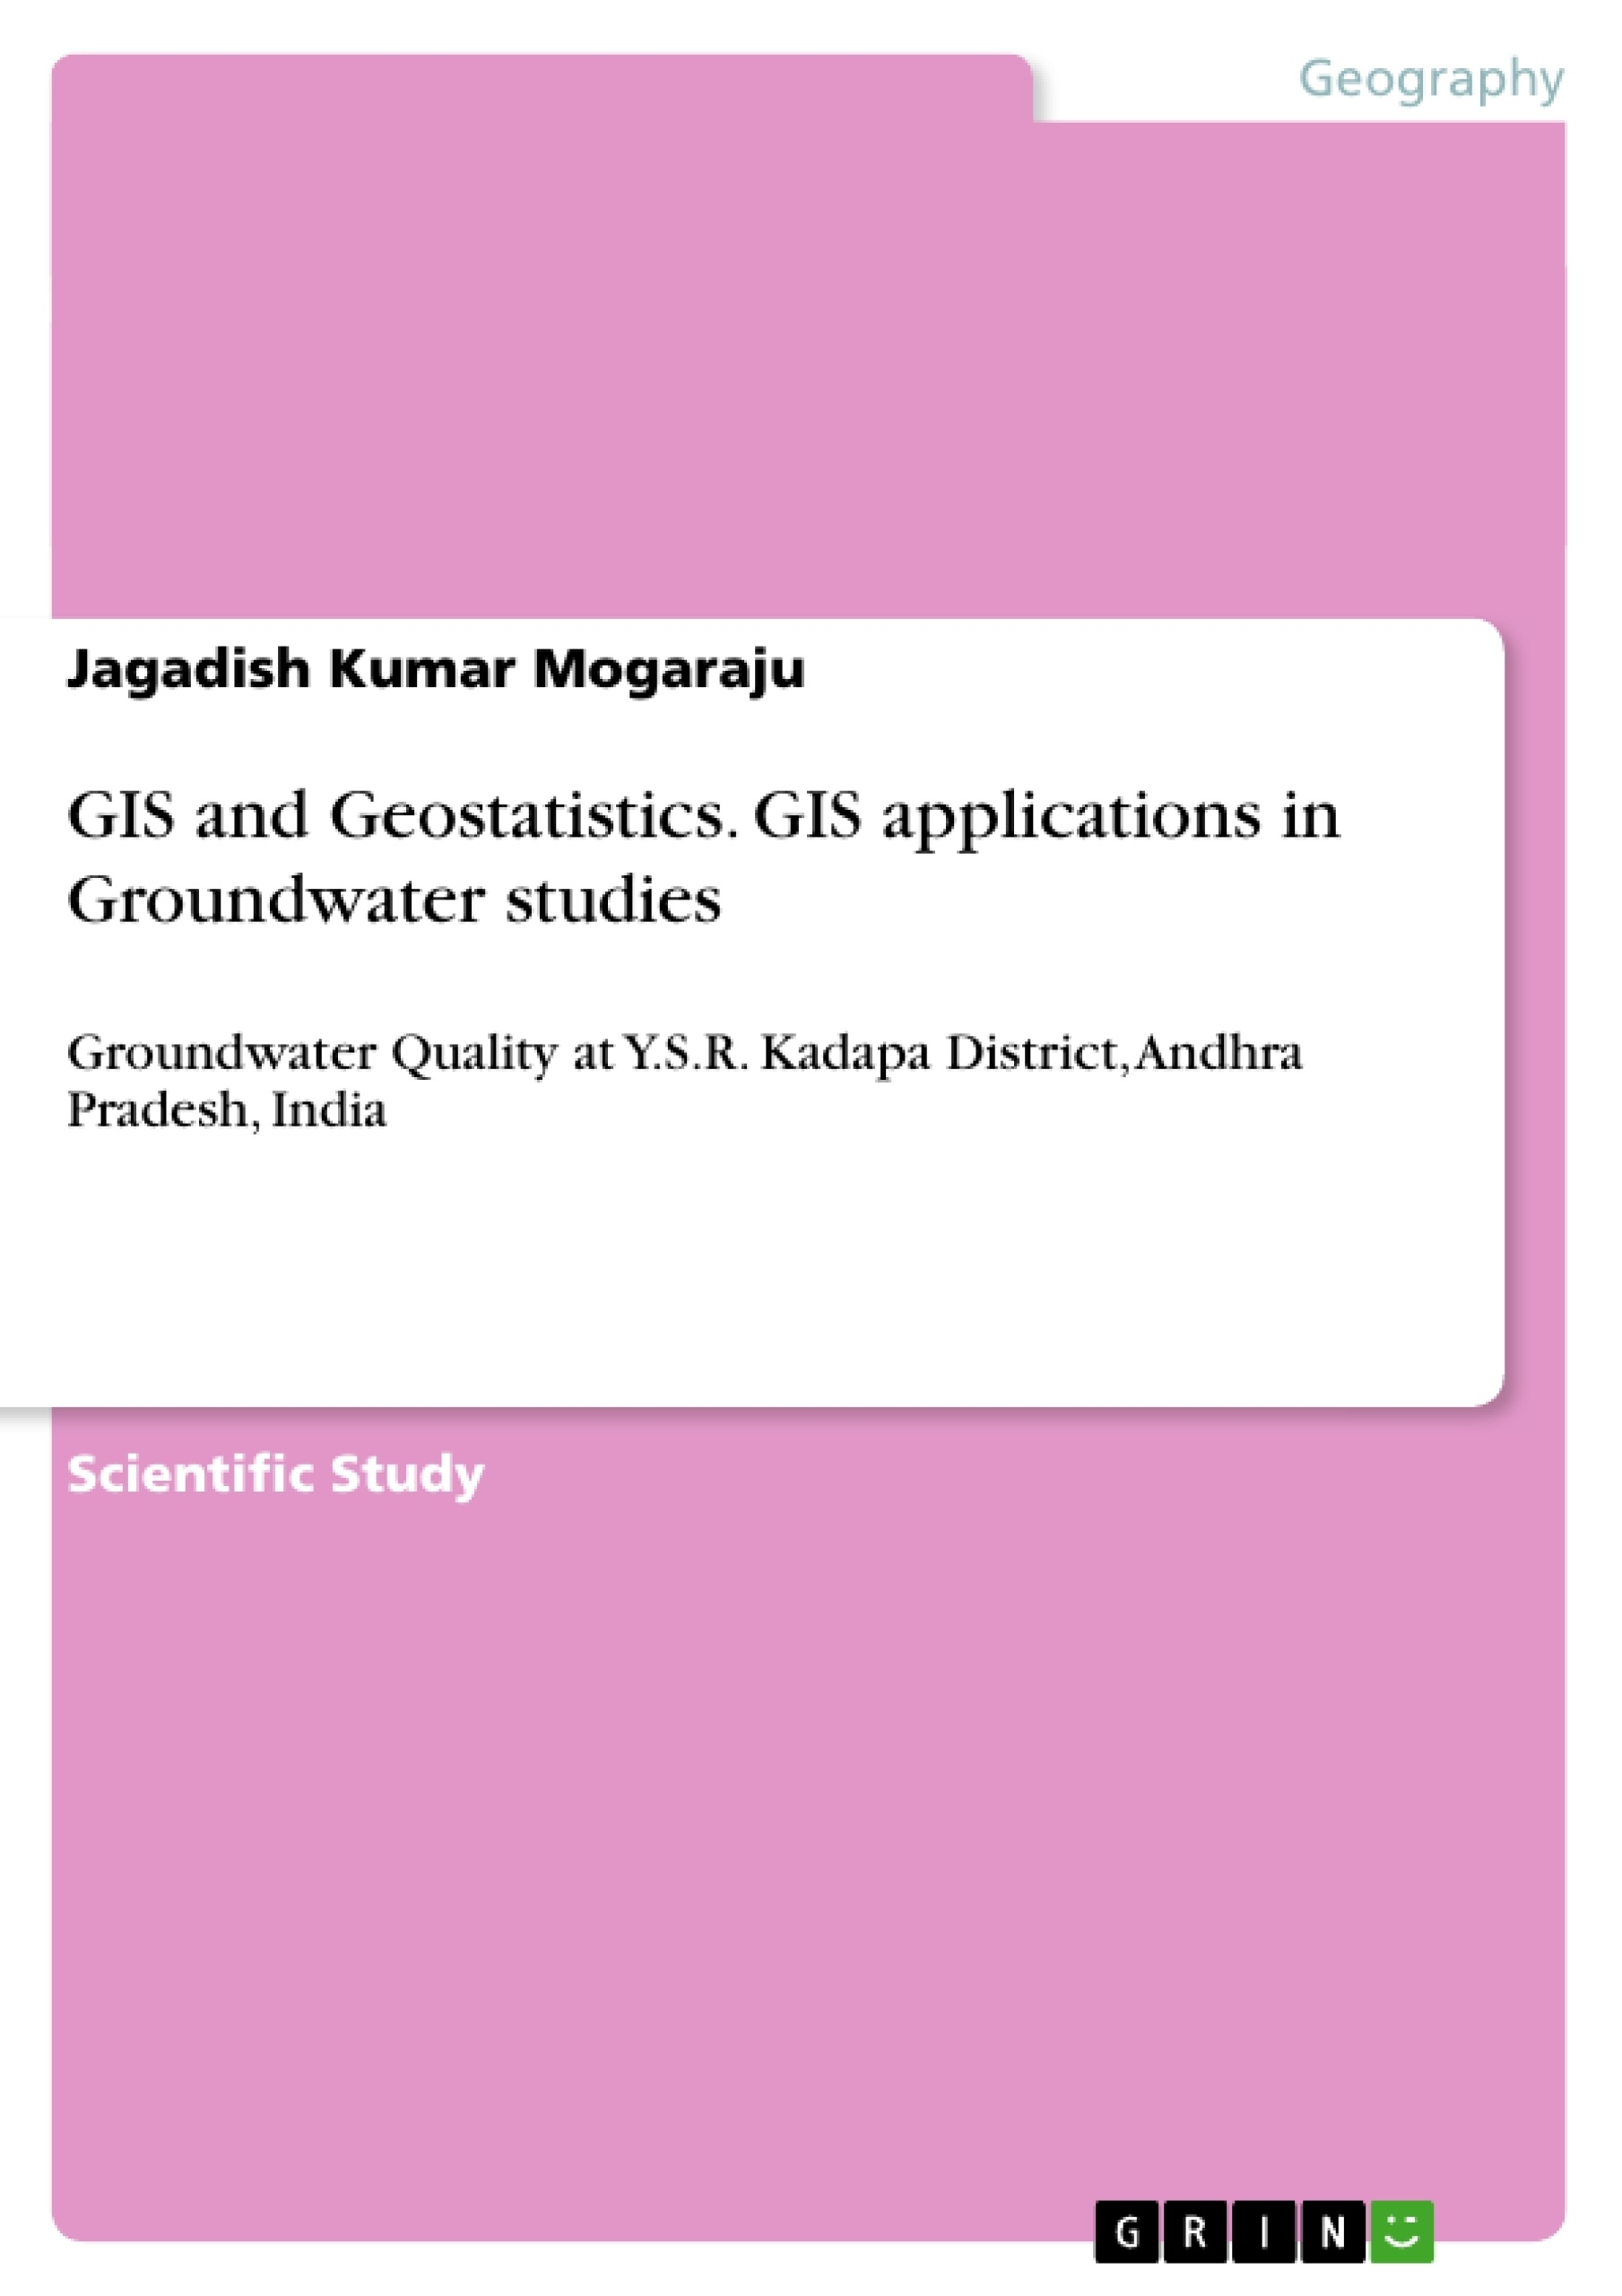 Title: GIS and Geostatistics. GIS applications in Groundwater studies